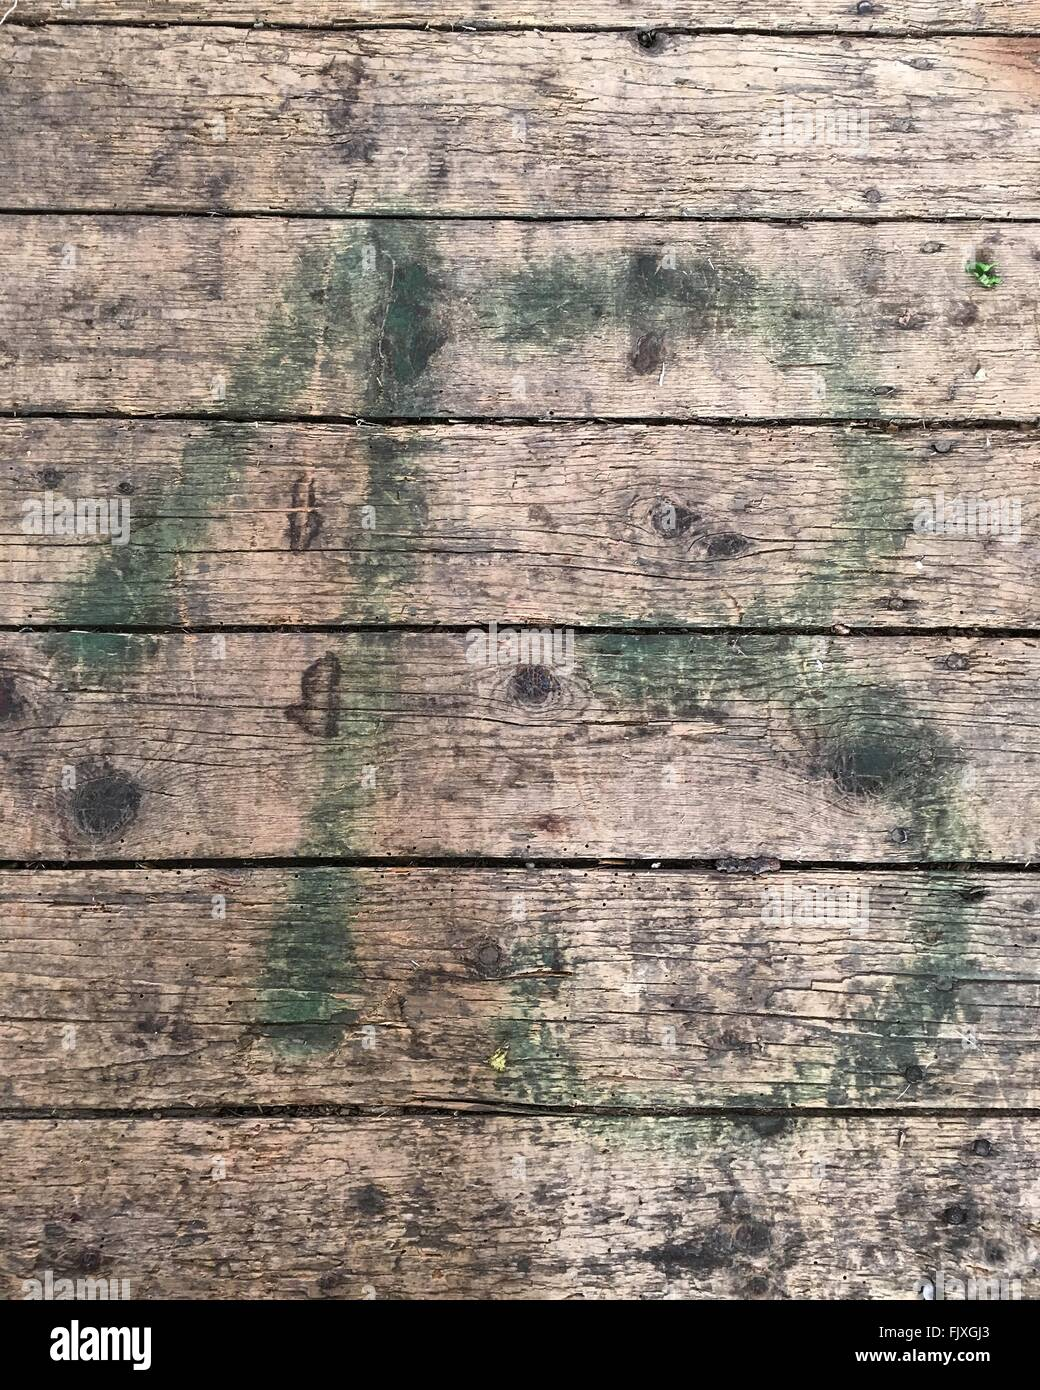 Full Frame Shot Of Old Wooden Wall Stock Photo: 97699451 - Alamy